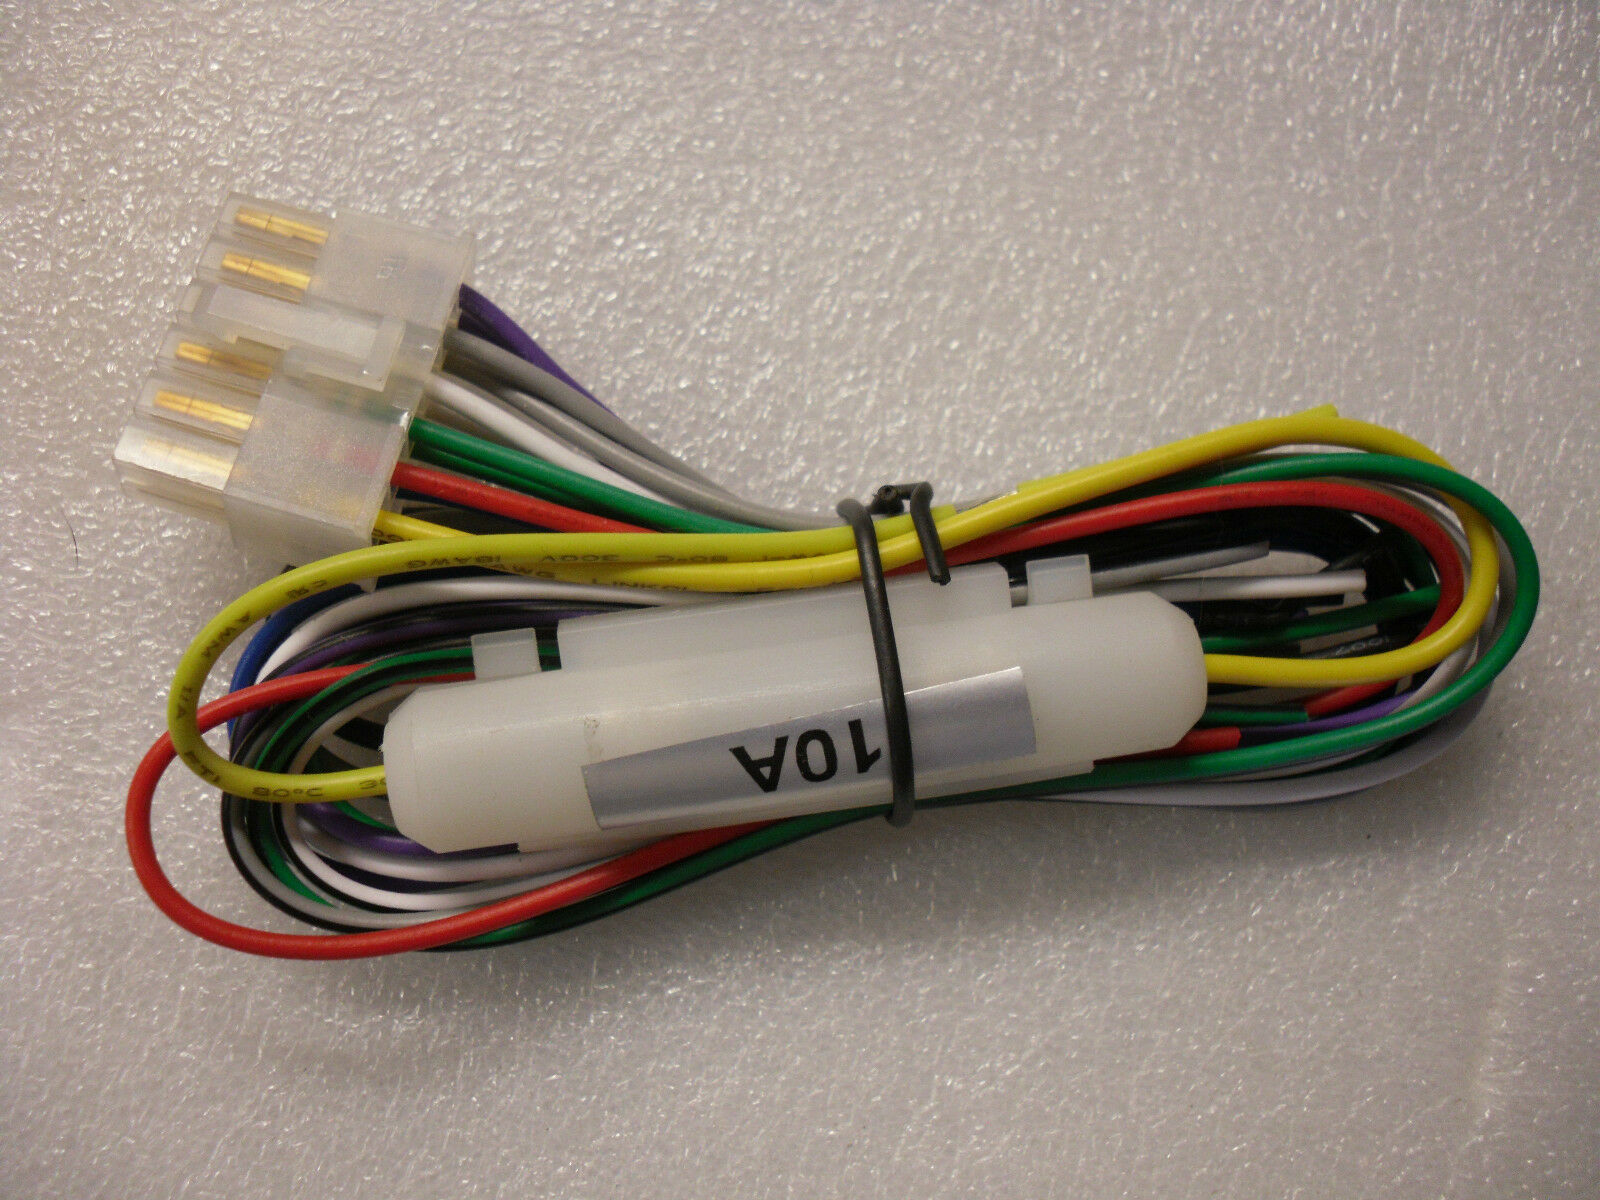 Dual Xdm260 Wiring Harness Diagram from static-cdn.imageservice.cloud